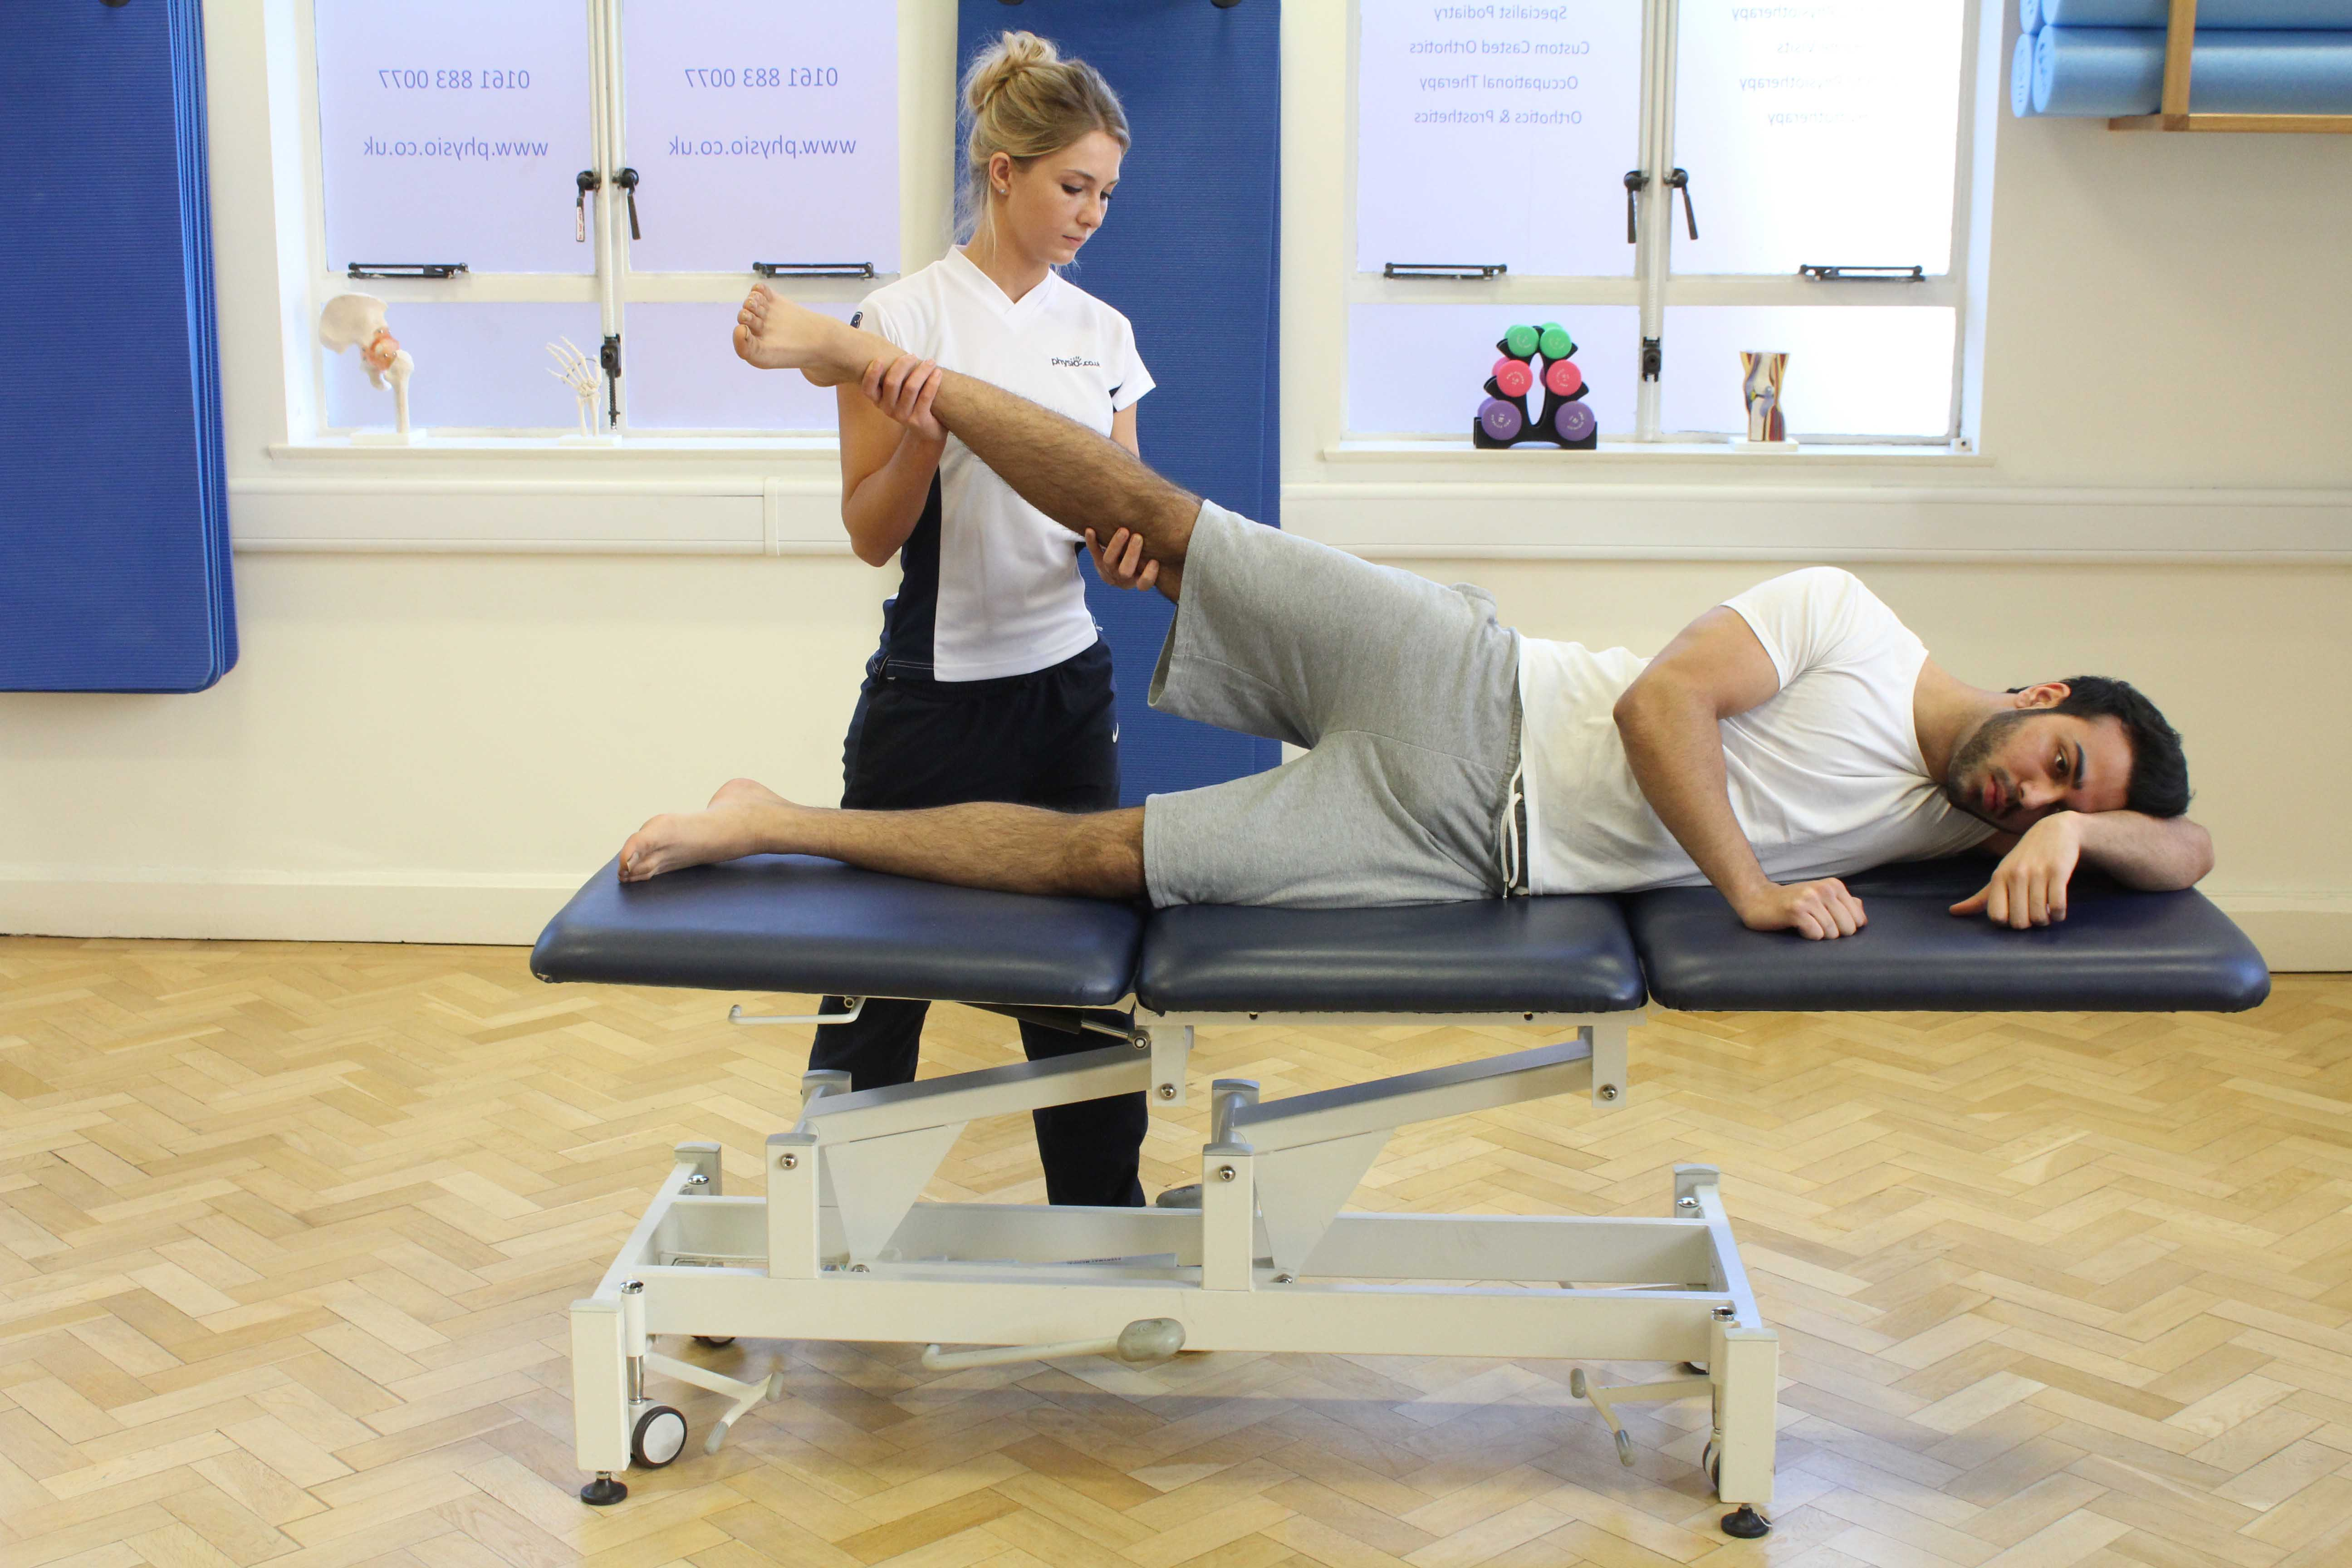 Core stability and proprioception exercises supervised by a neurological physiotherapist